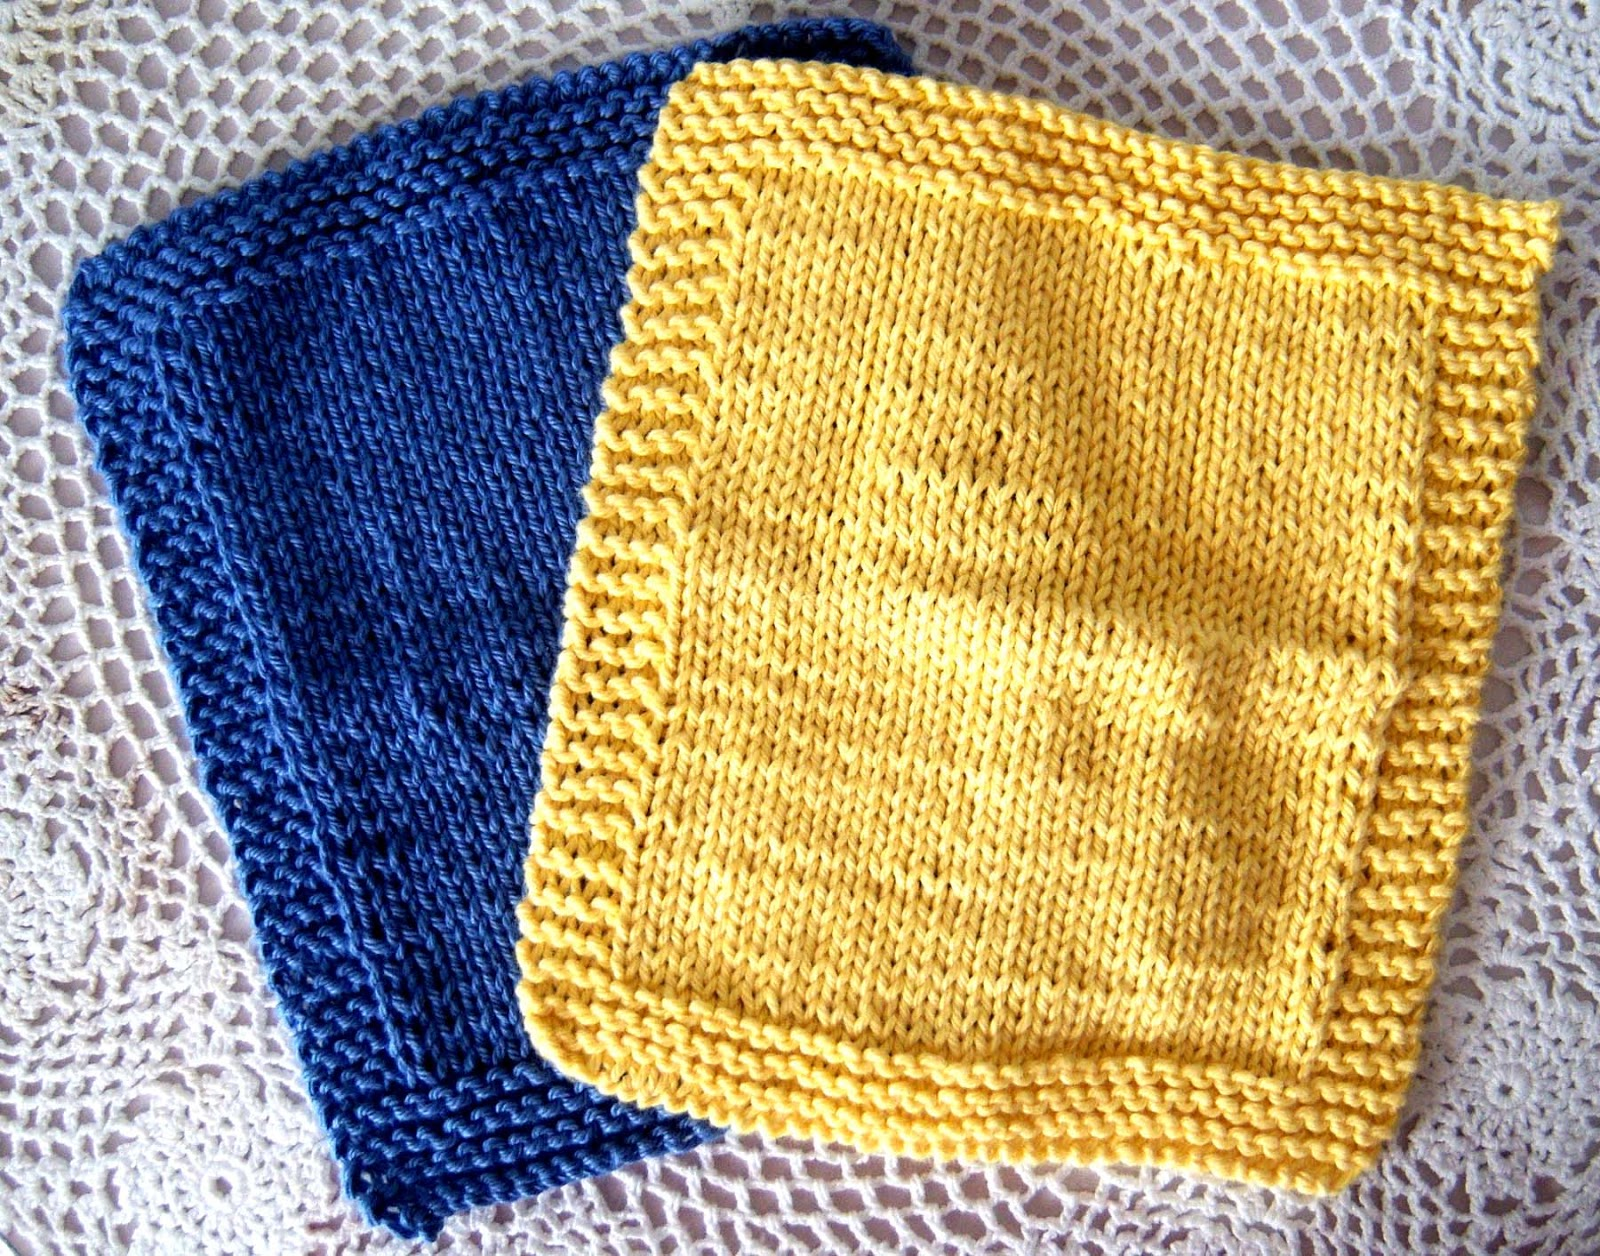 Knitting A Dishcloth Pattern Easy : Shoregirls Creations: Knitted Dishcloths